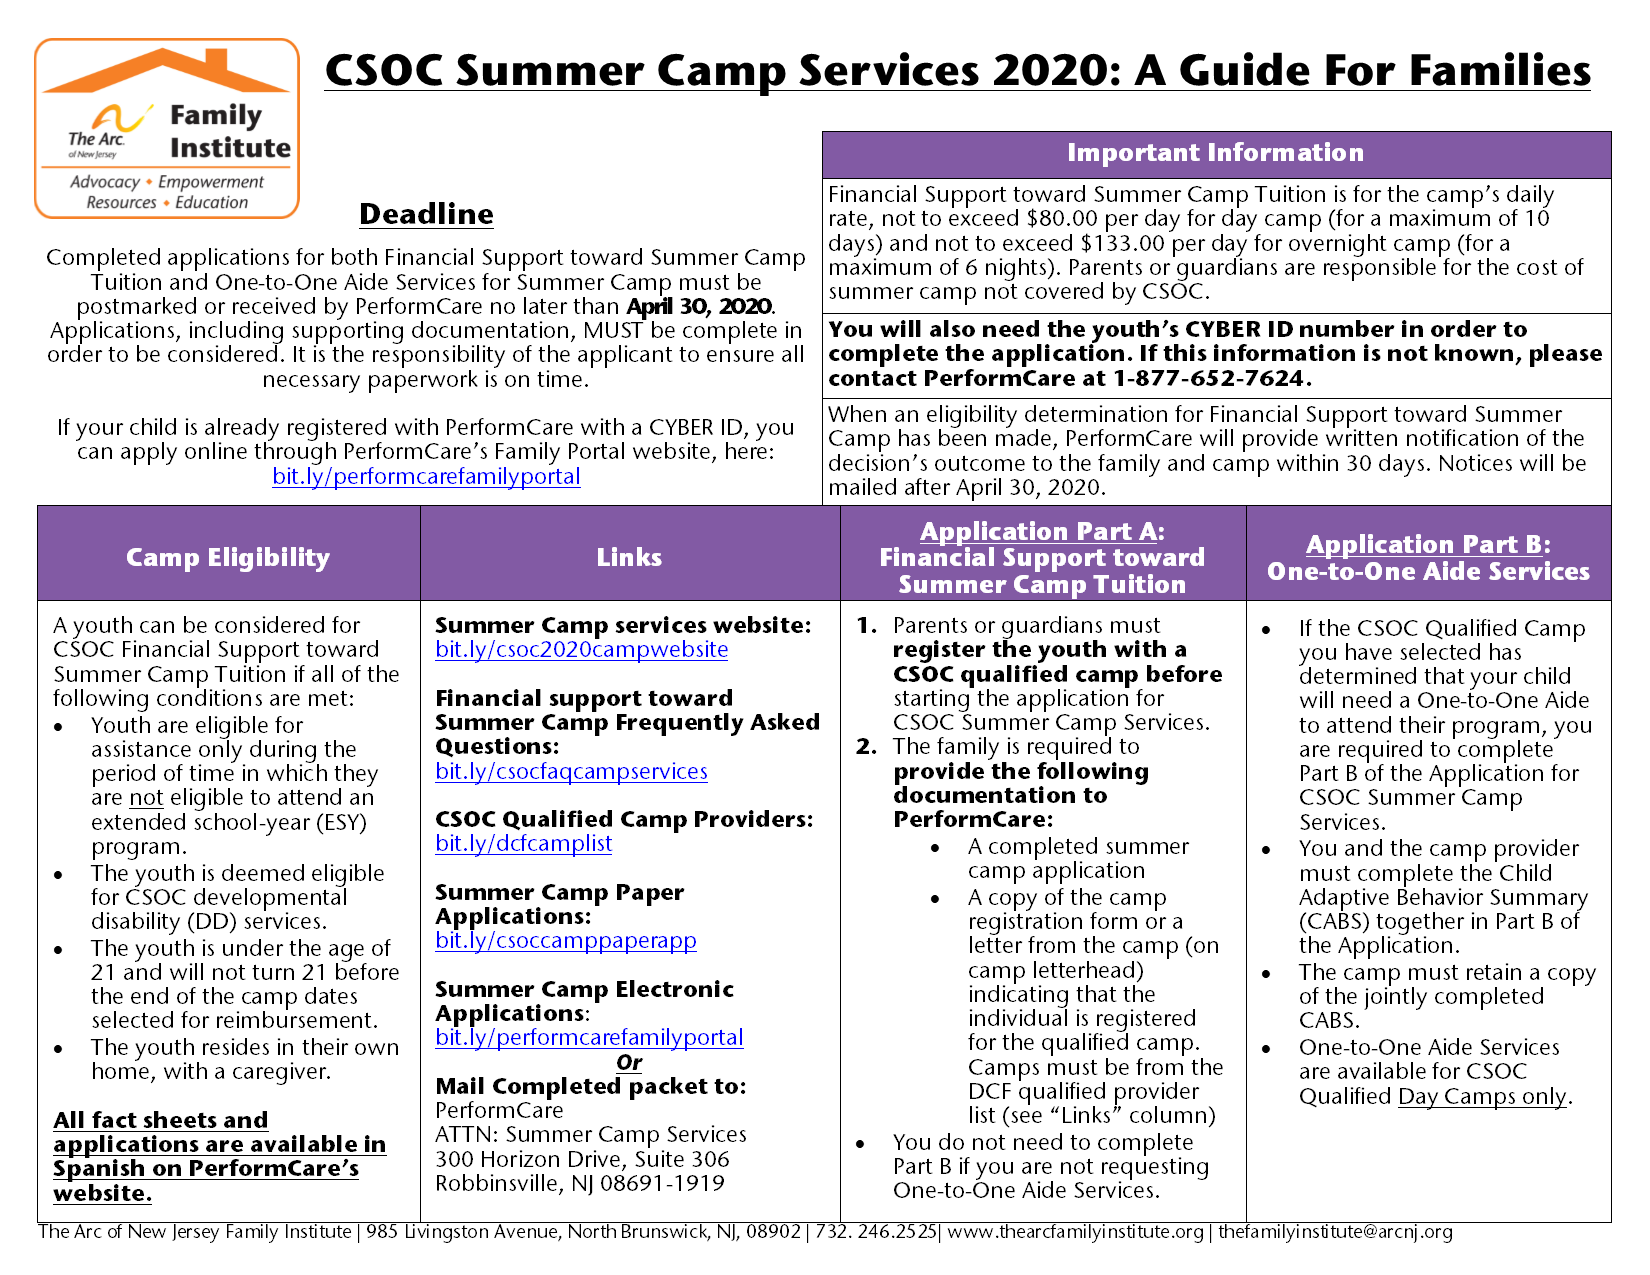 CSOC Summer Camp Services 2020: A Guide For Families